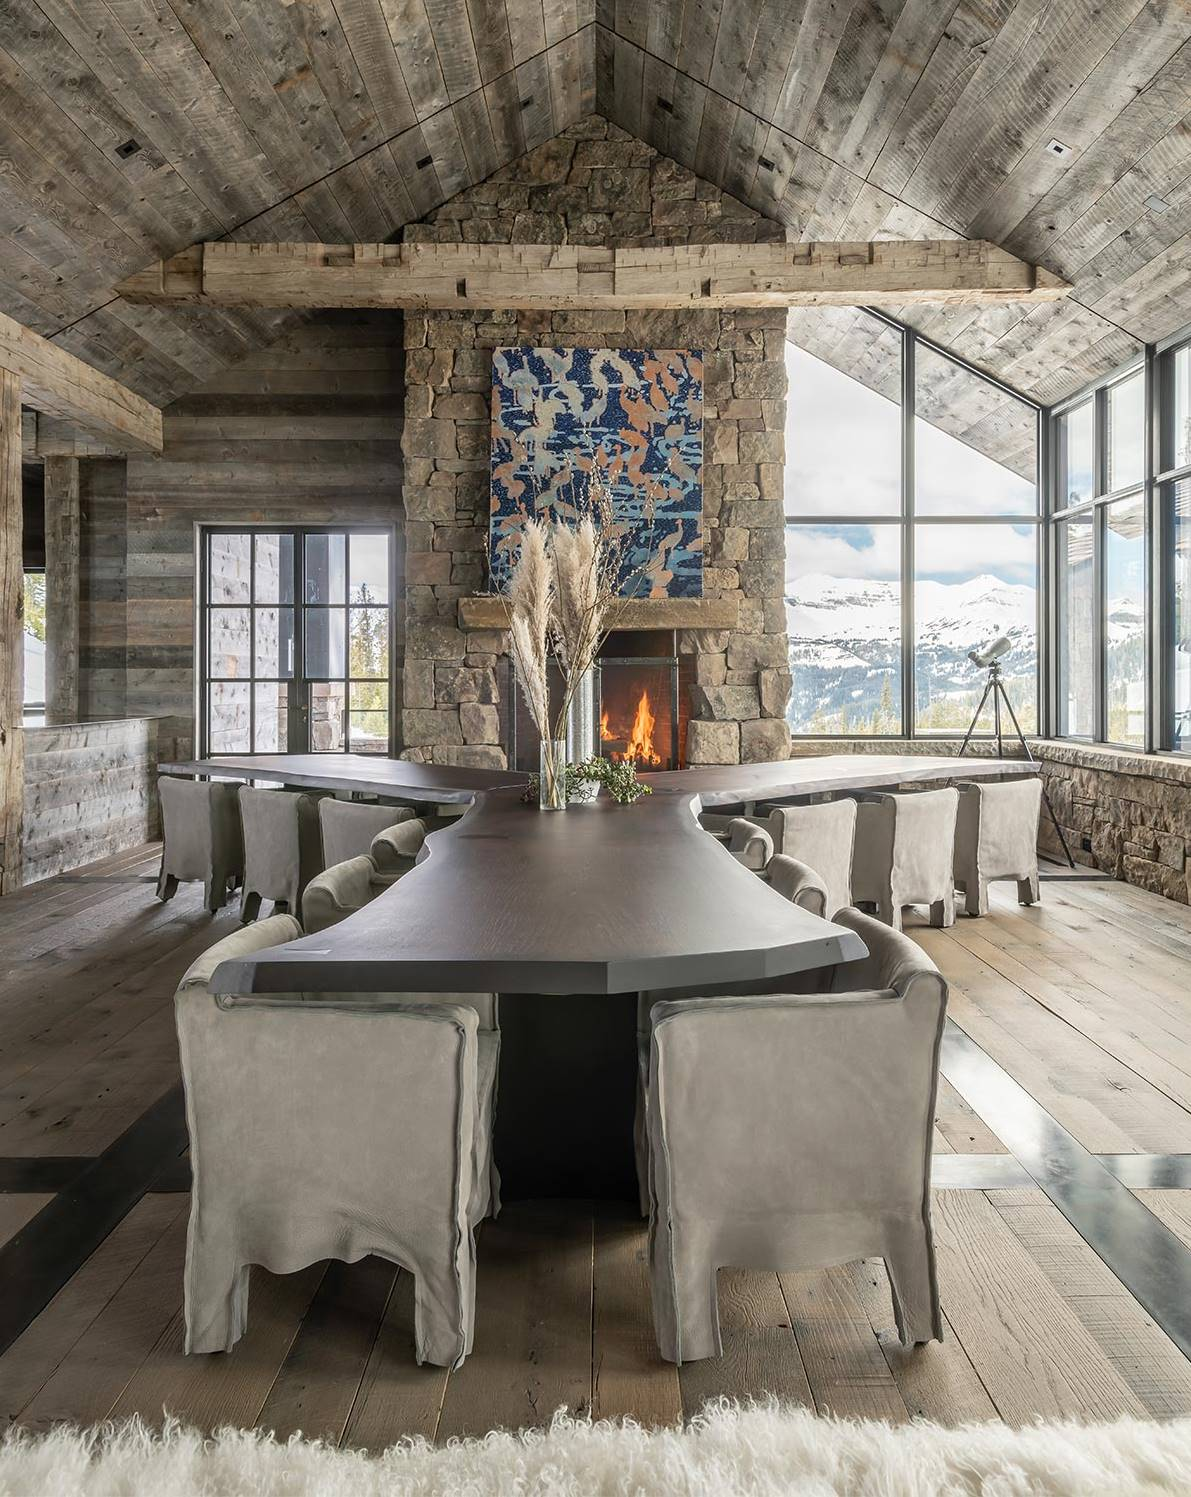 Amazing dining table in a luxurious chalet